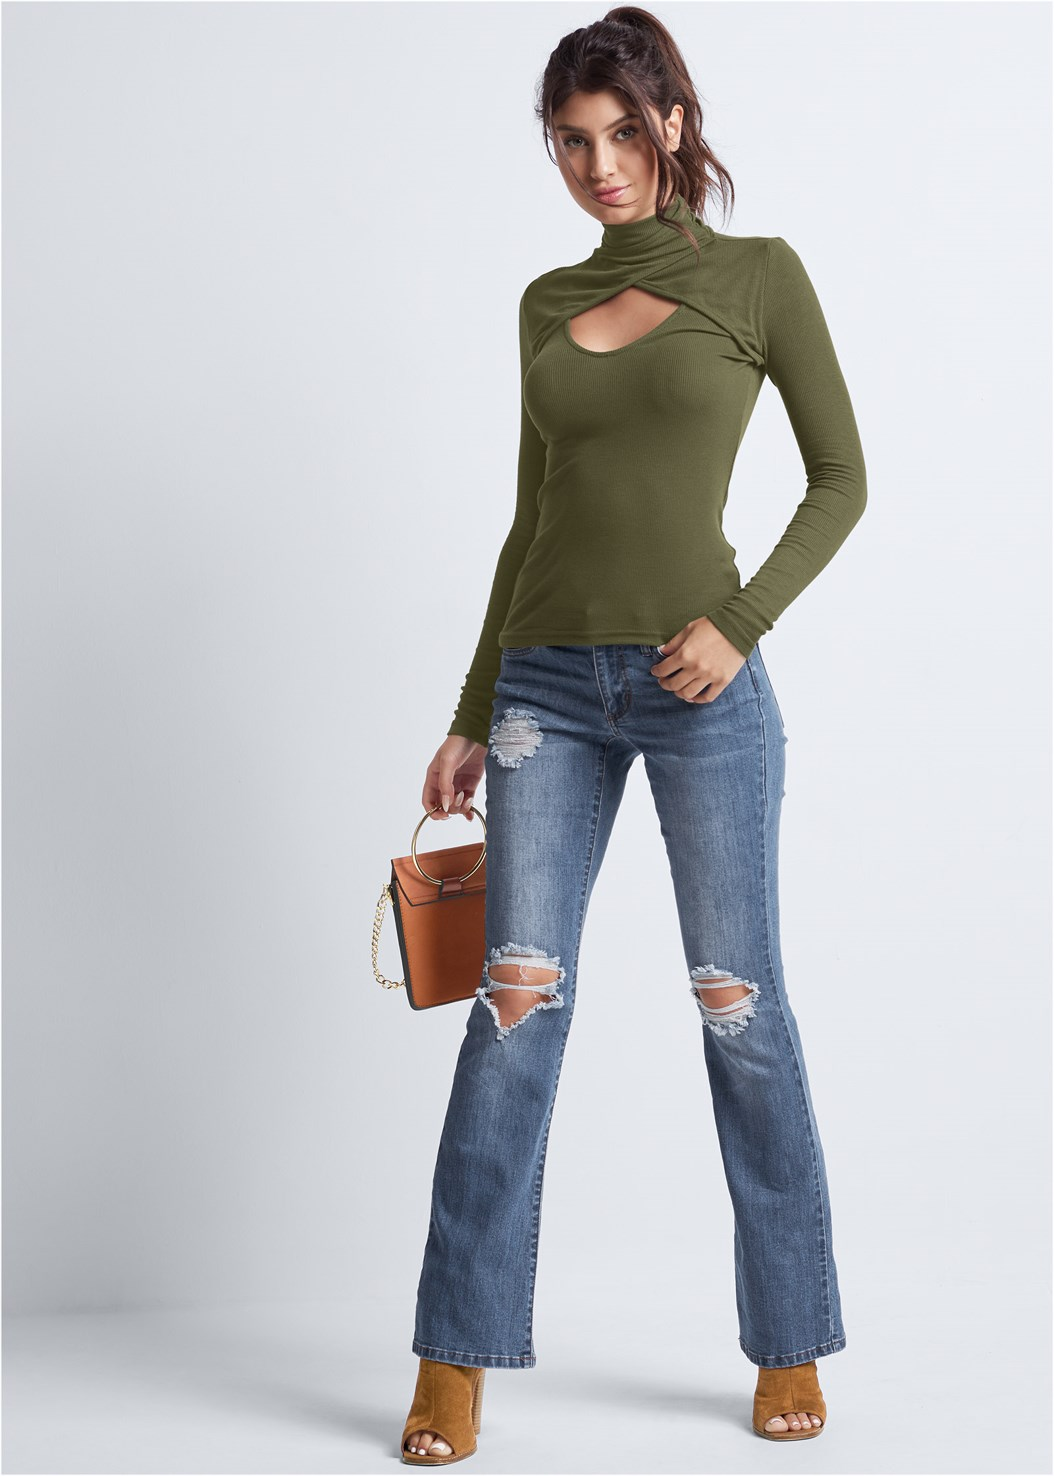 Cut Out Mock Neck Top,Lace Up Tall Boots